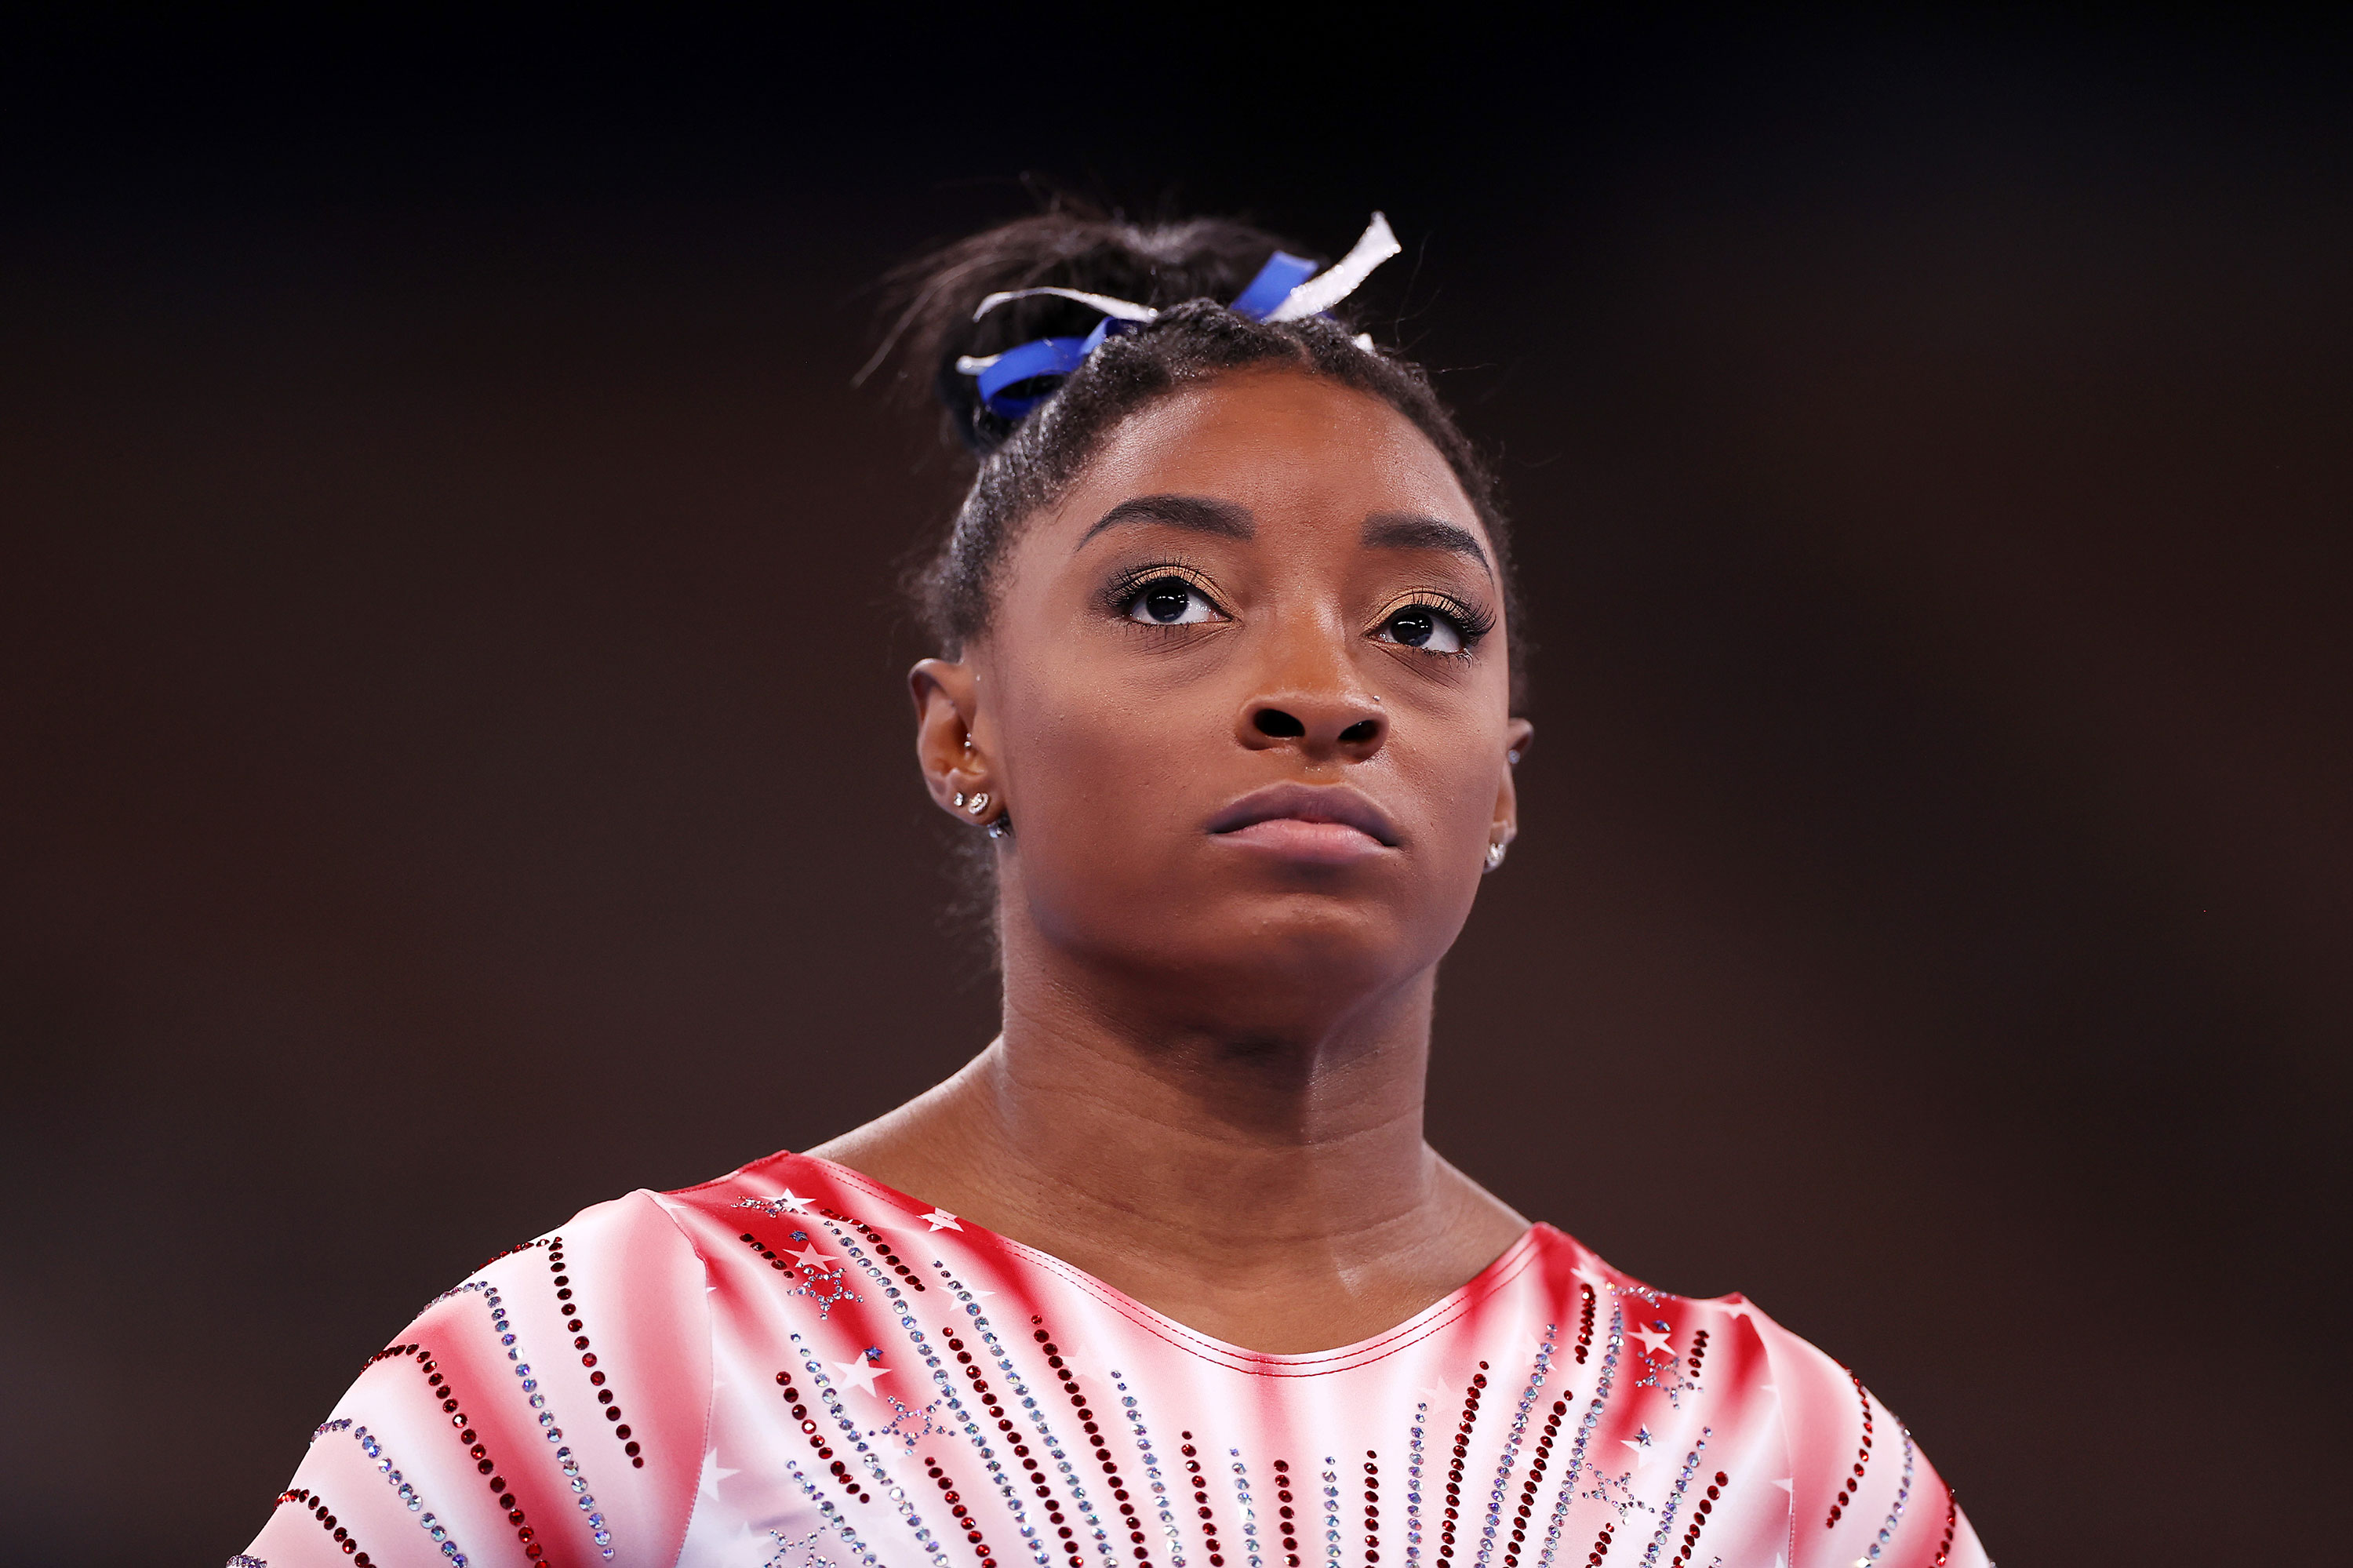 American Simone Biles is seen during warm-ups prior to the balance beam final on August 3.